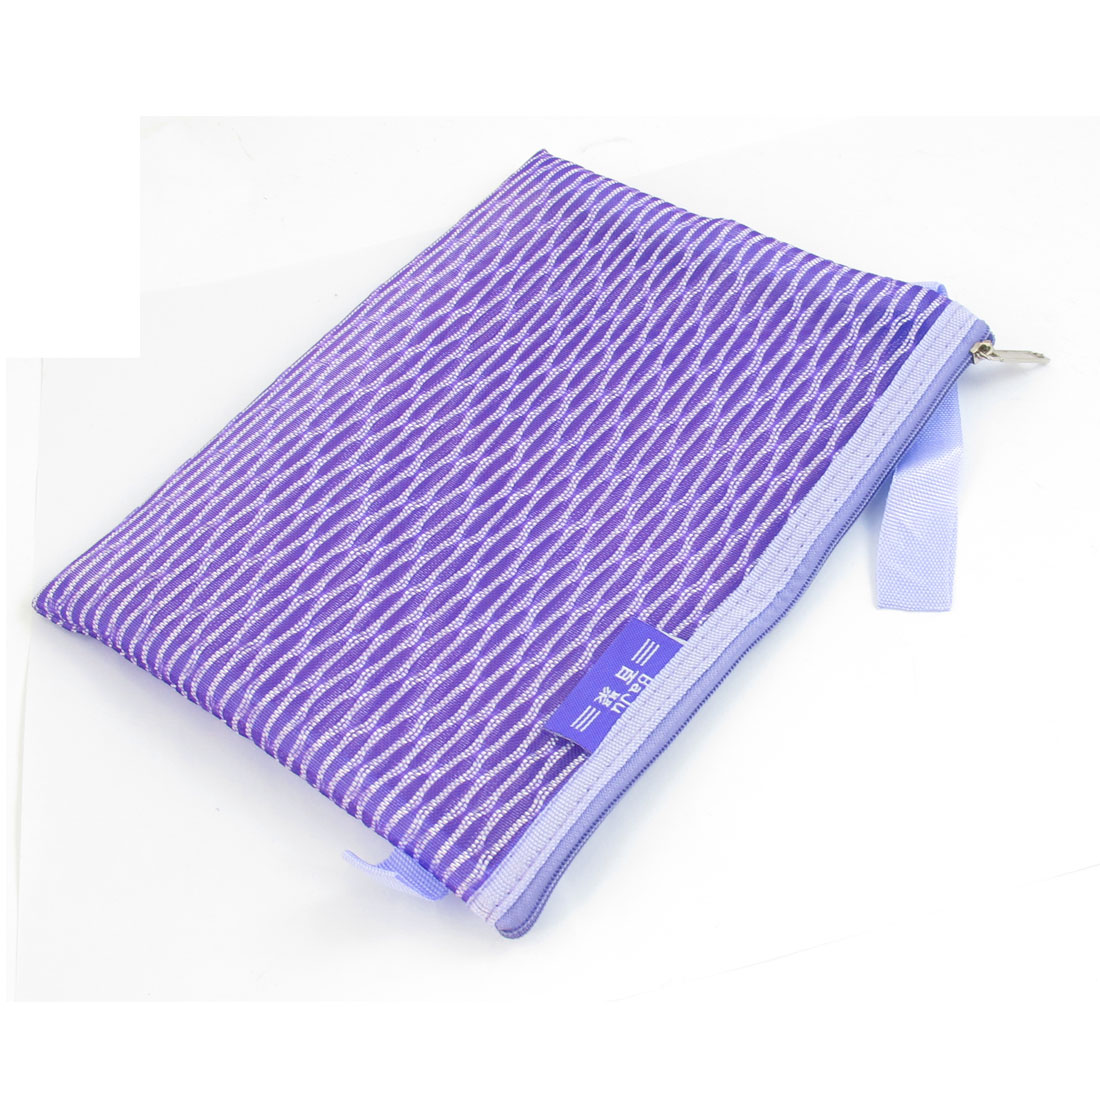 Zip Up Gridding A5 Paper Pen Pencil File Case Bag Holder Purple